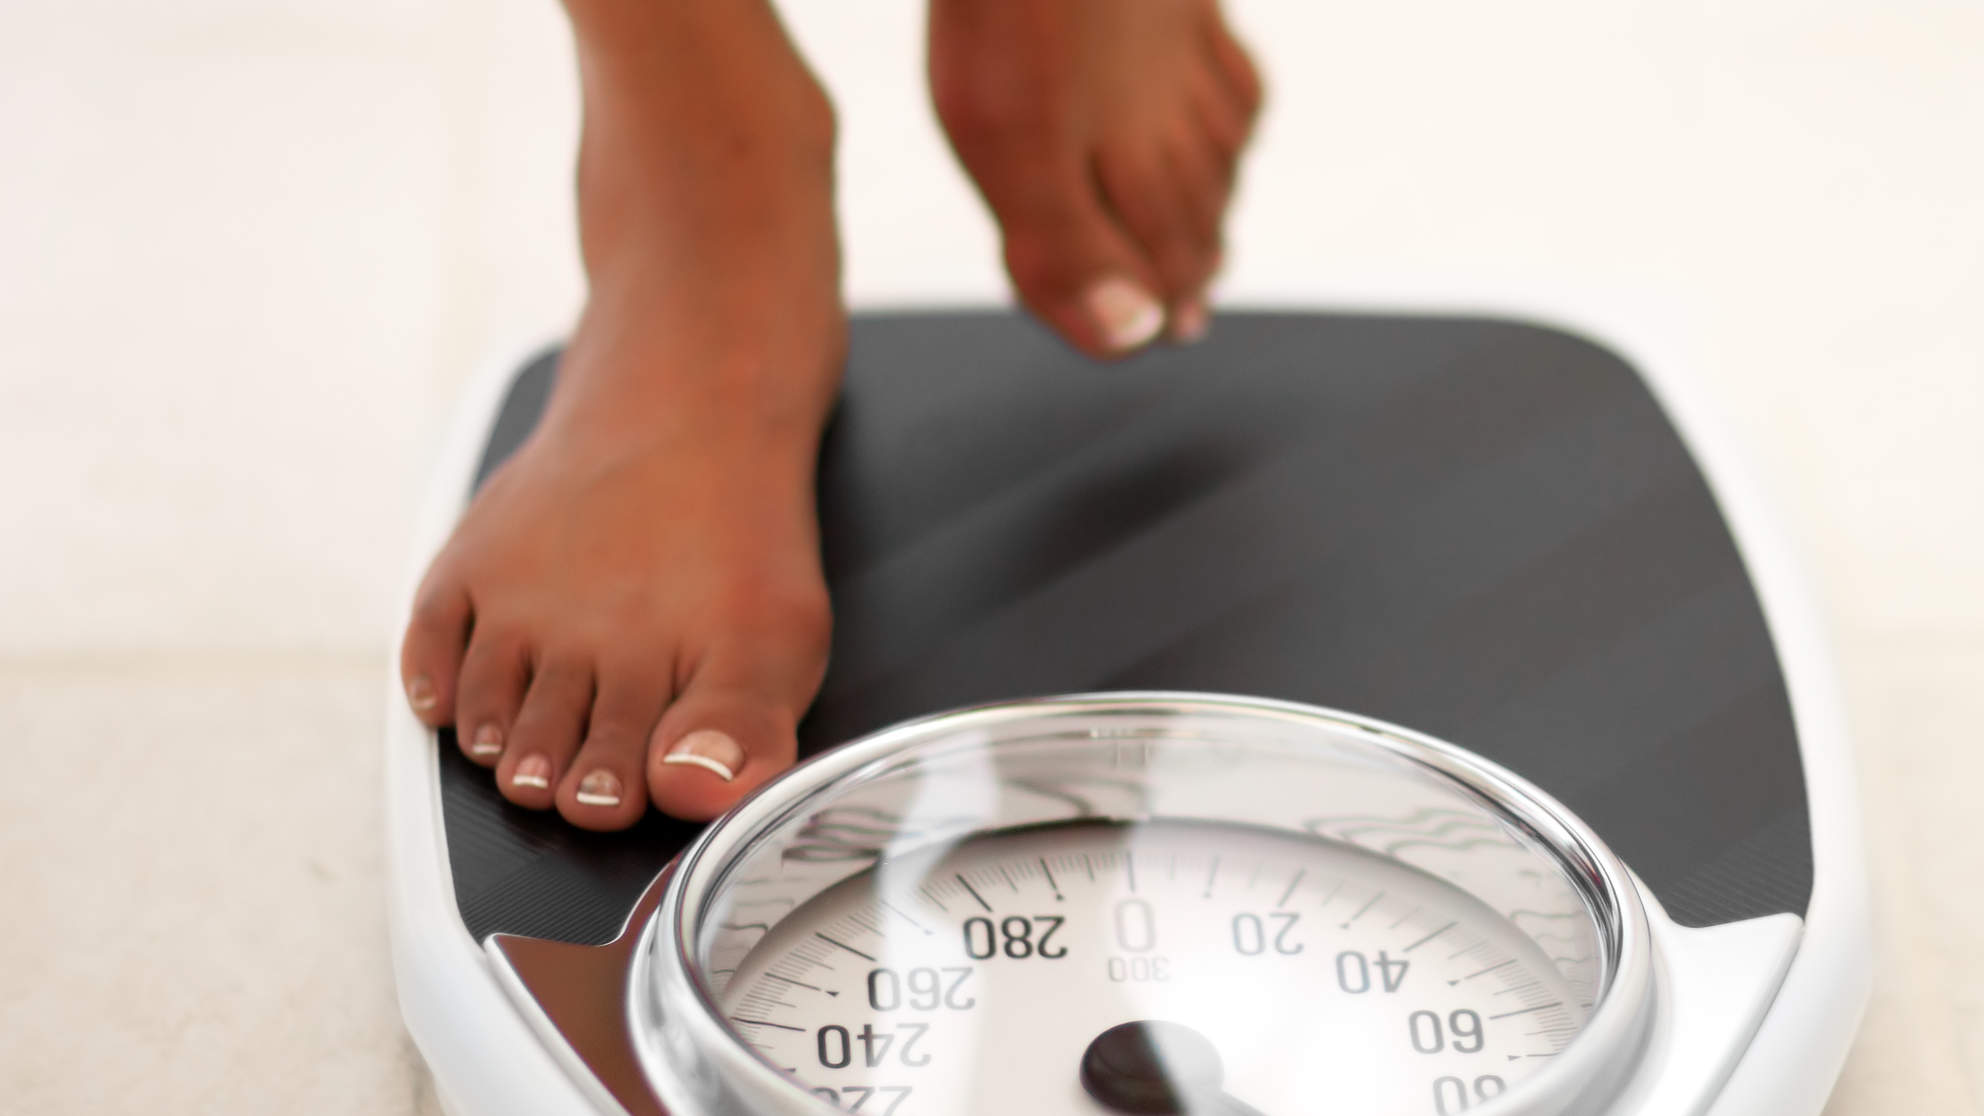 weight-scale-weight-loss=plateau